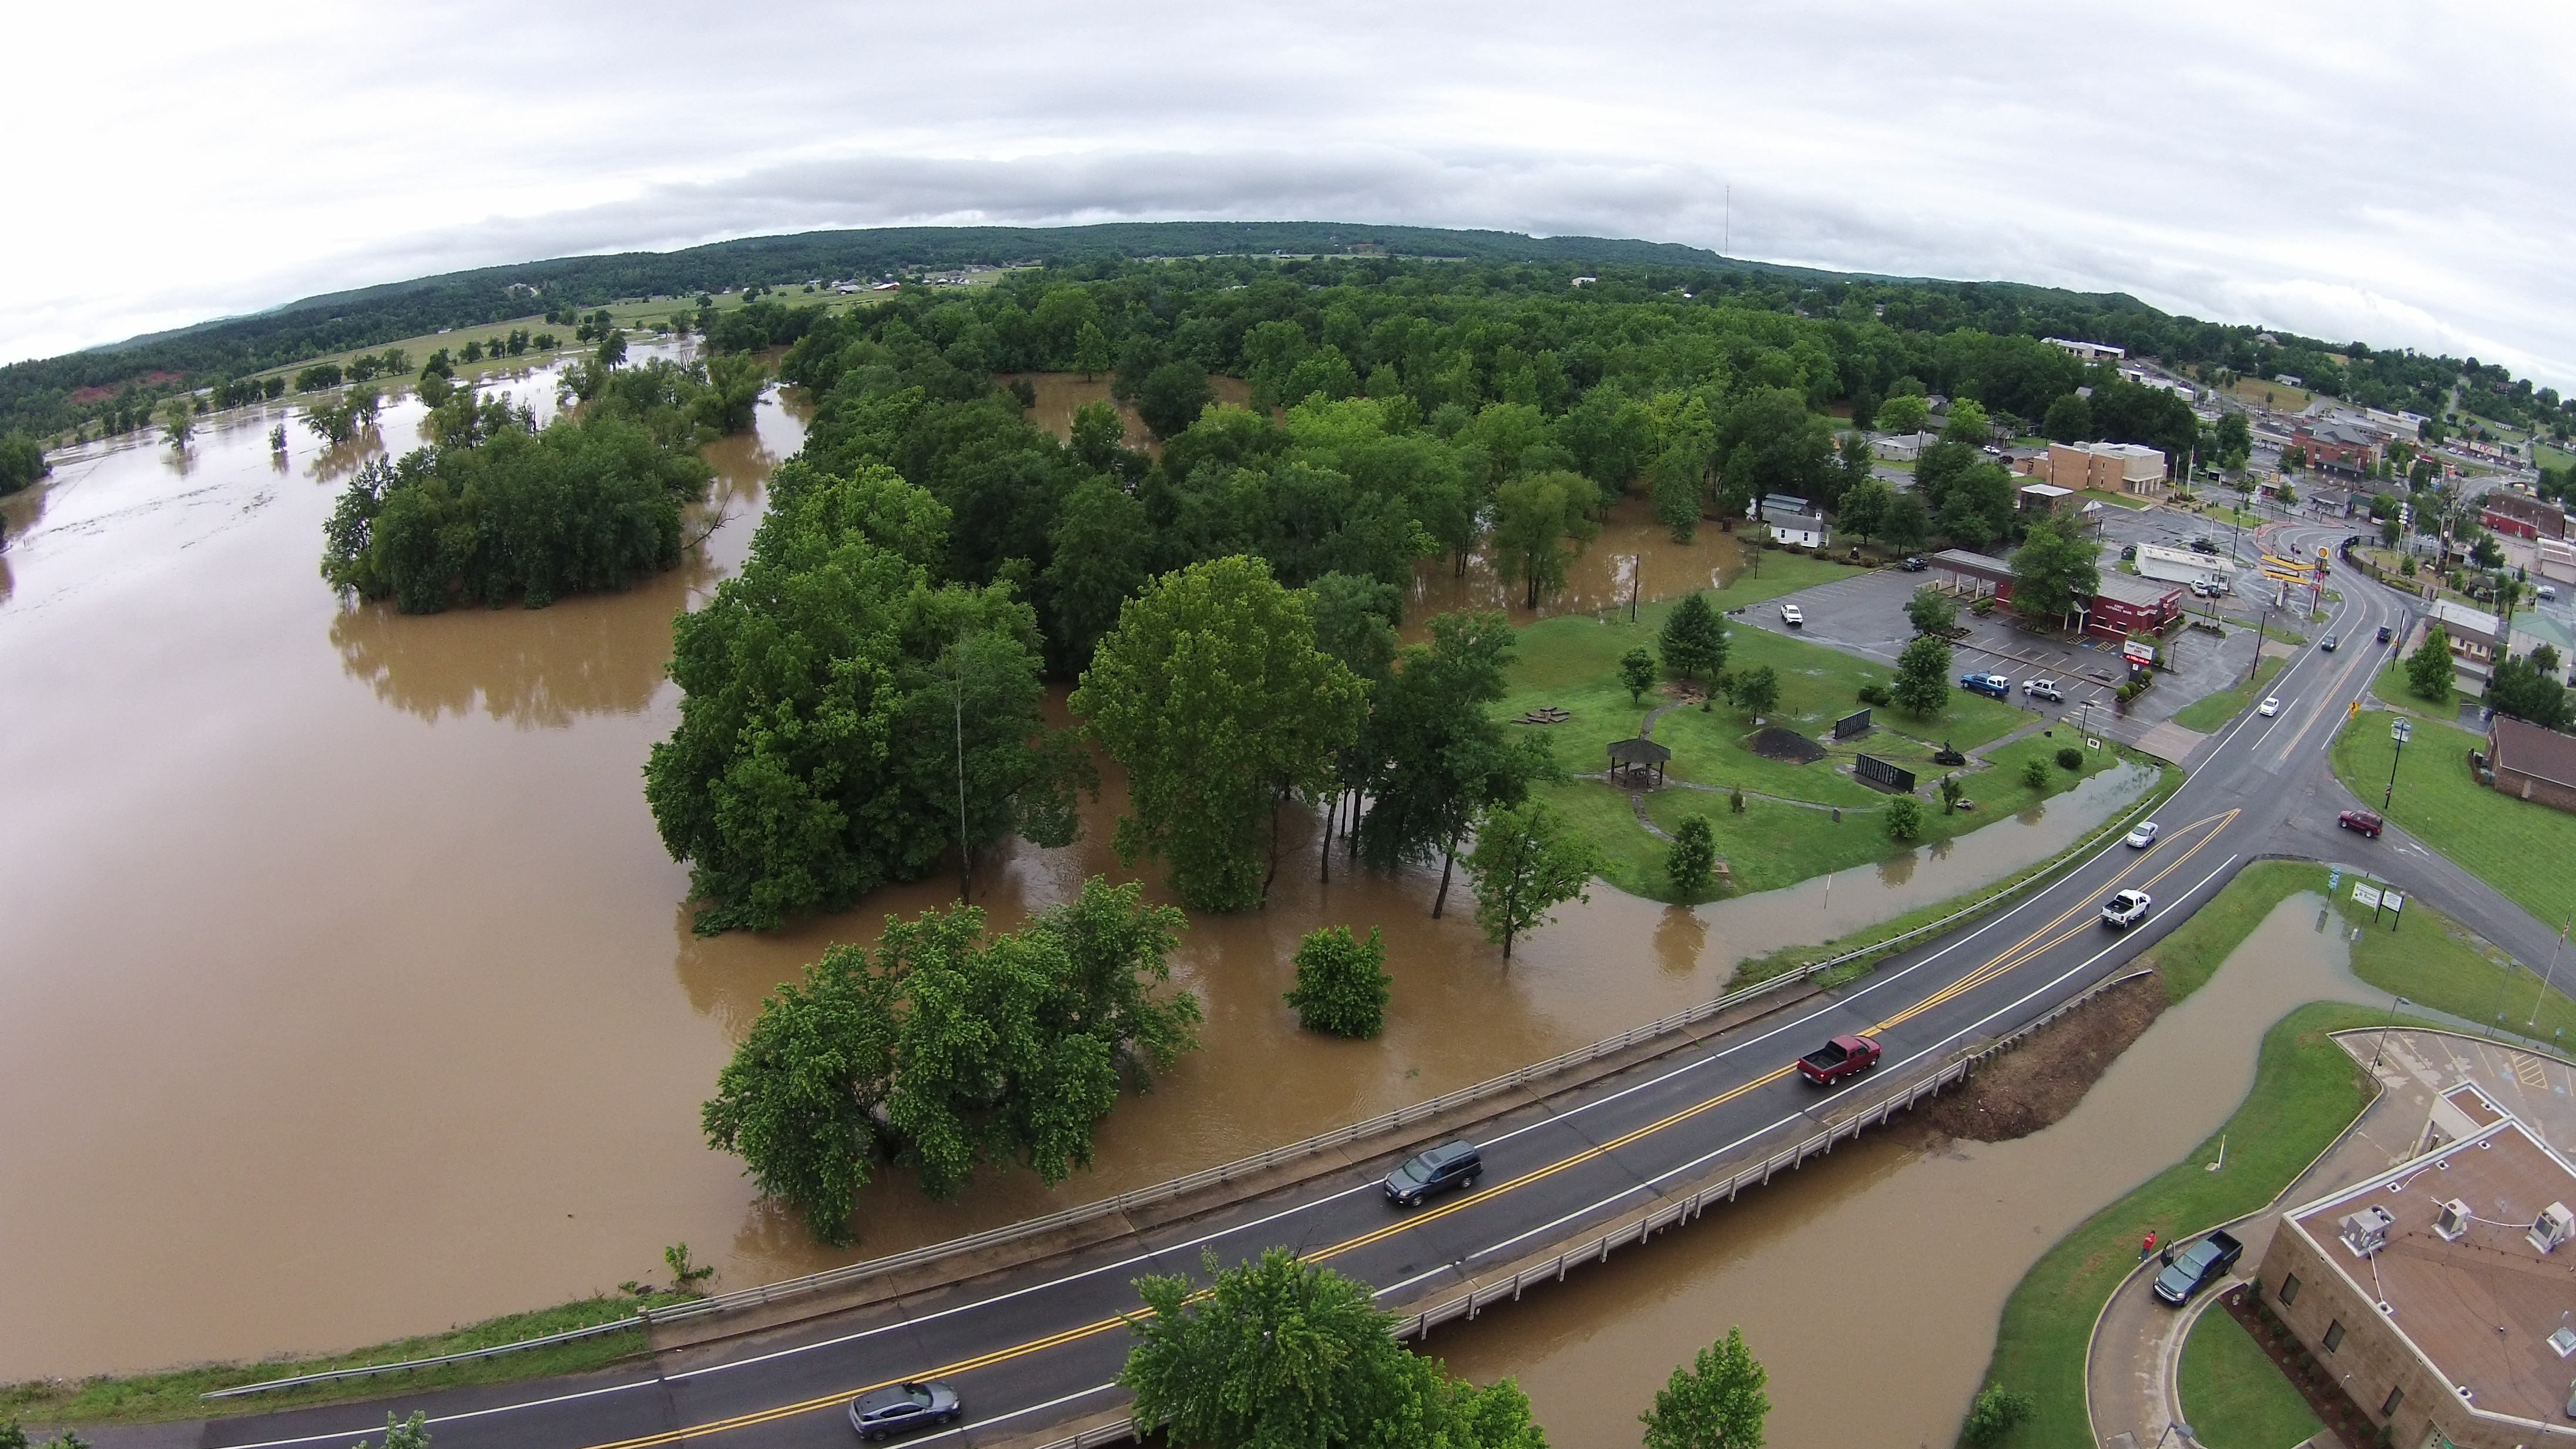 Drone over Greenwood from 5NEWS Garry Norman